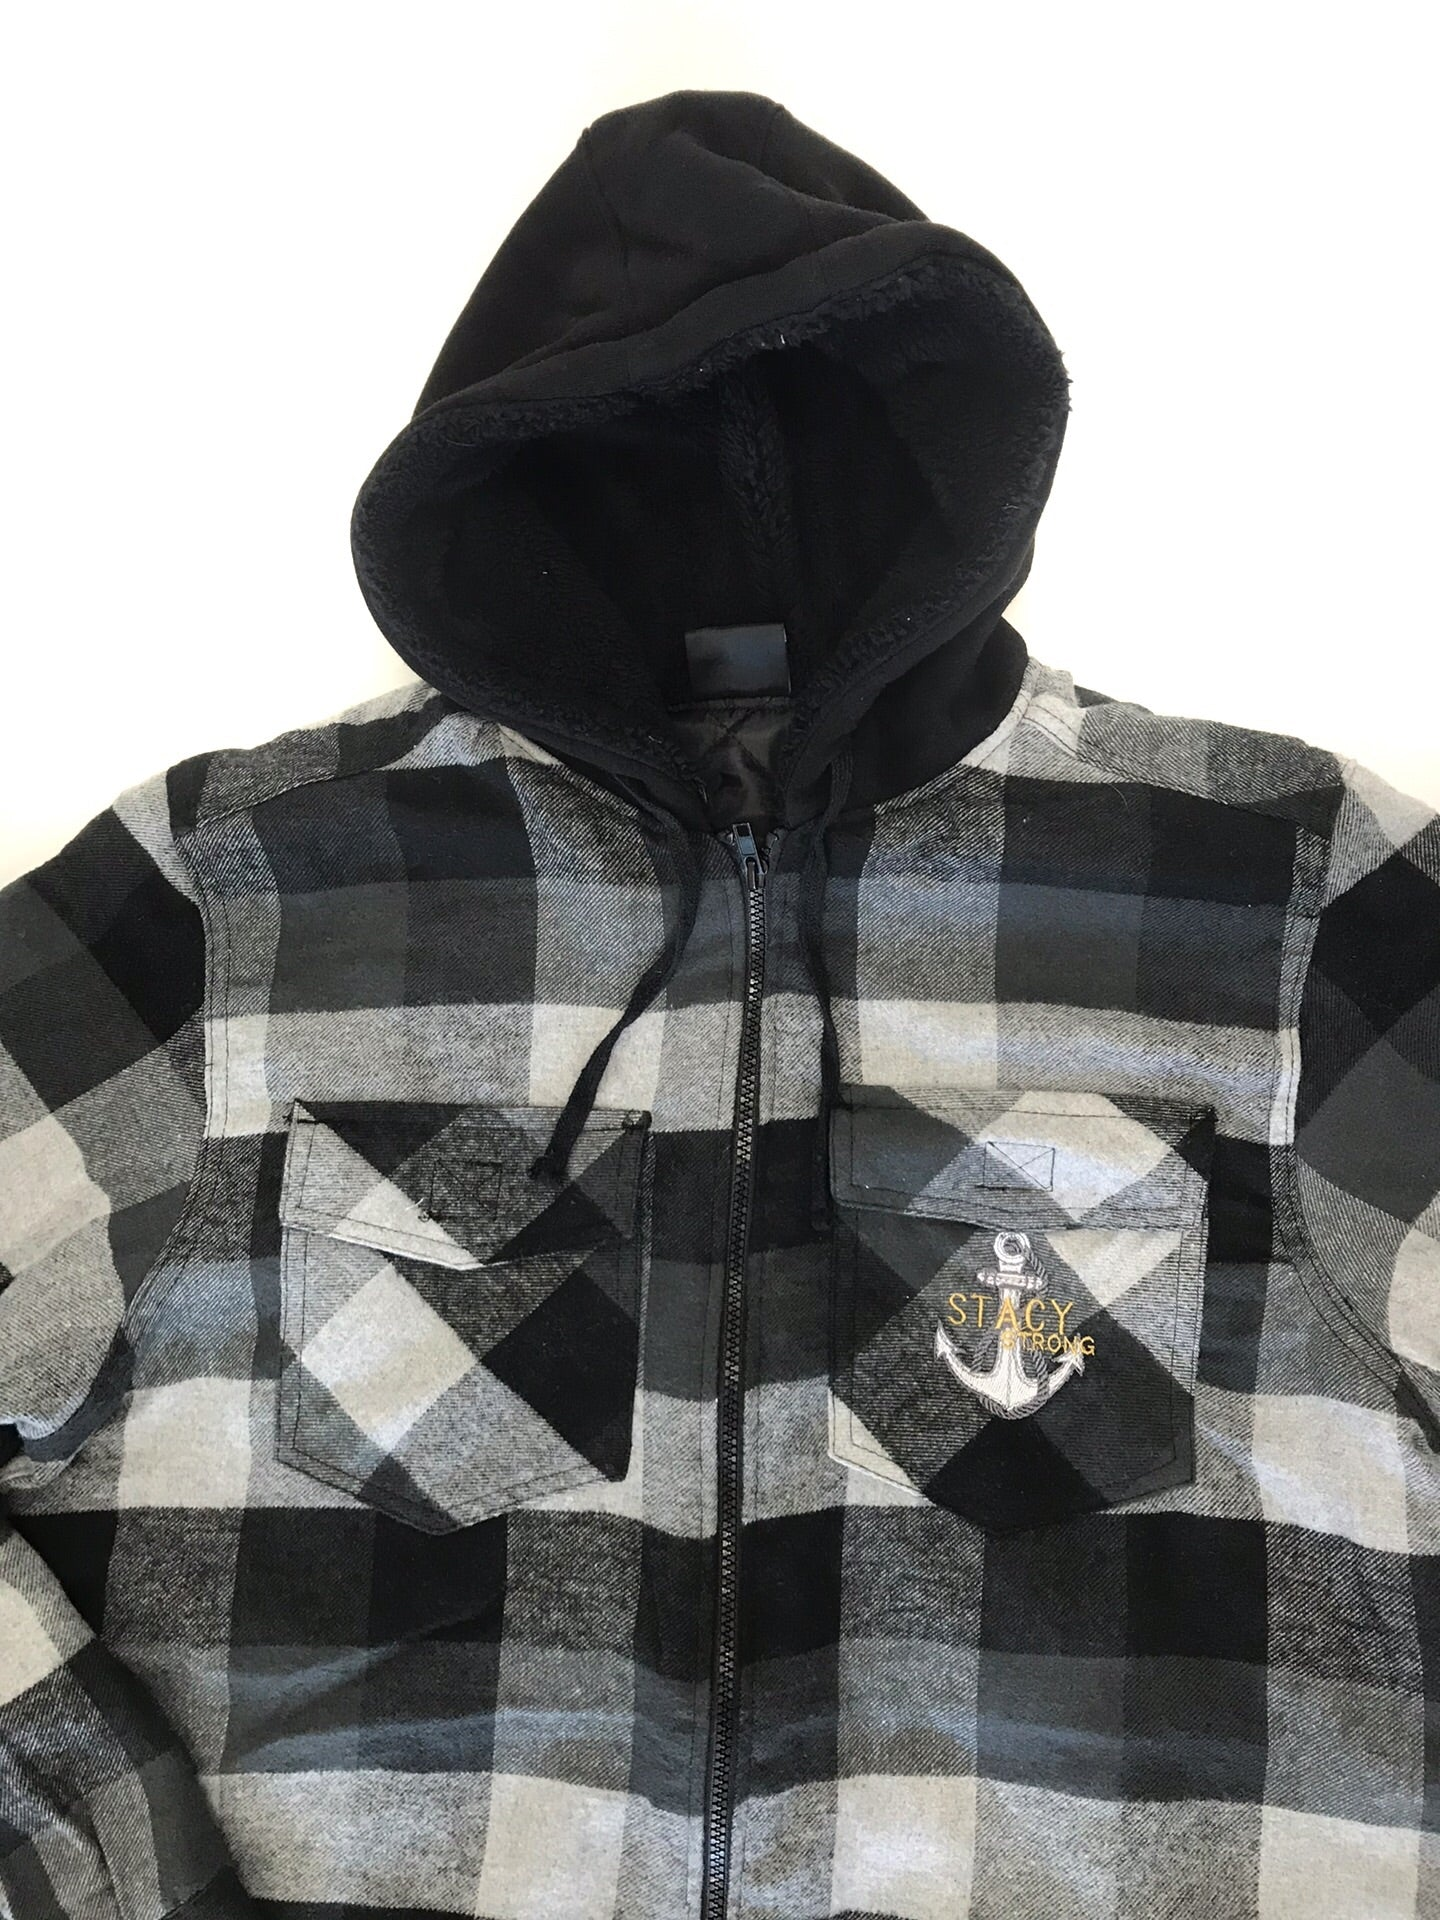 Stacy Strong Flannel